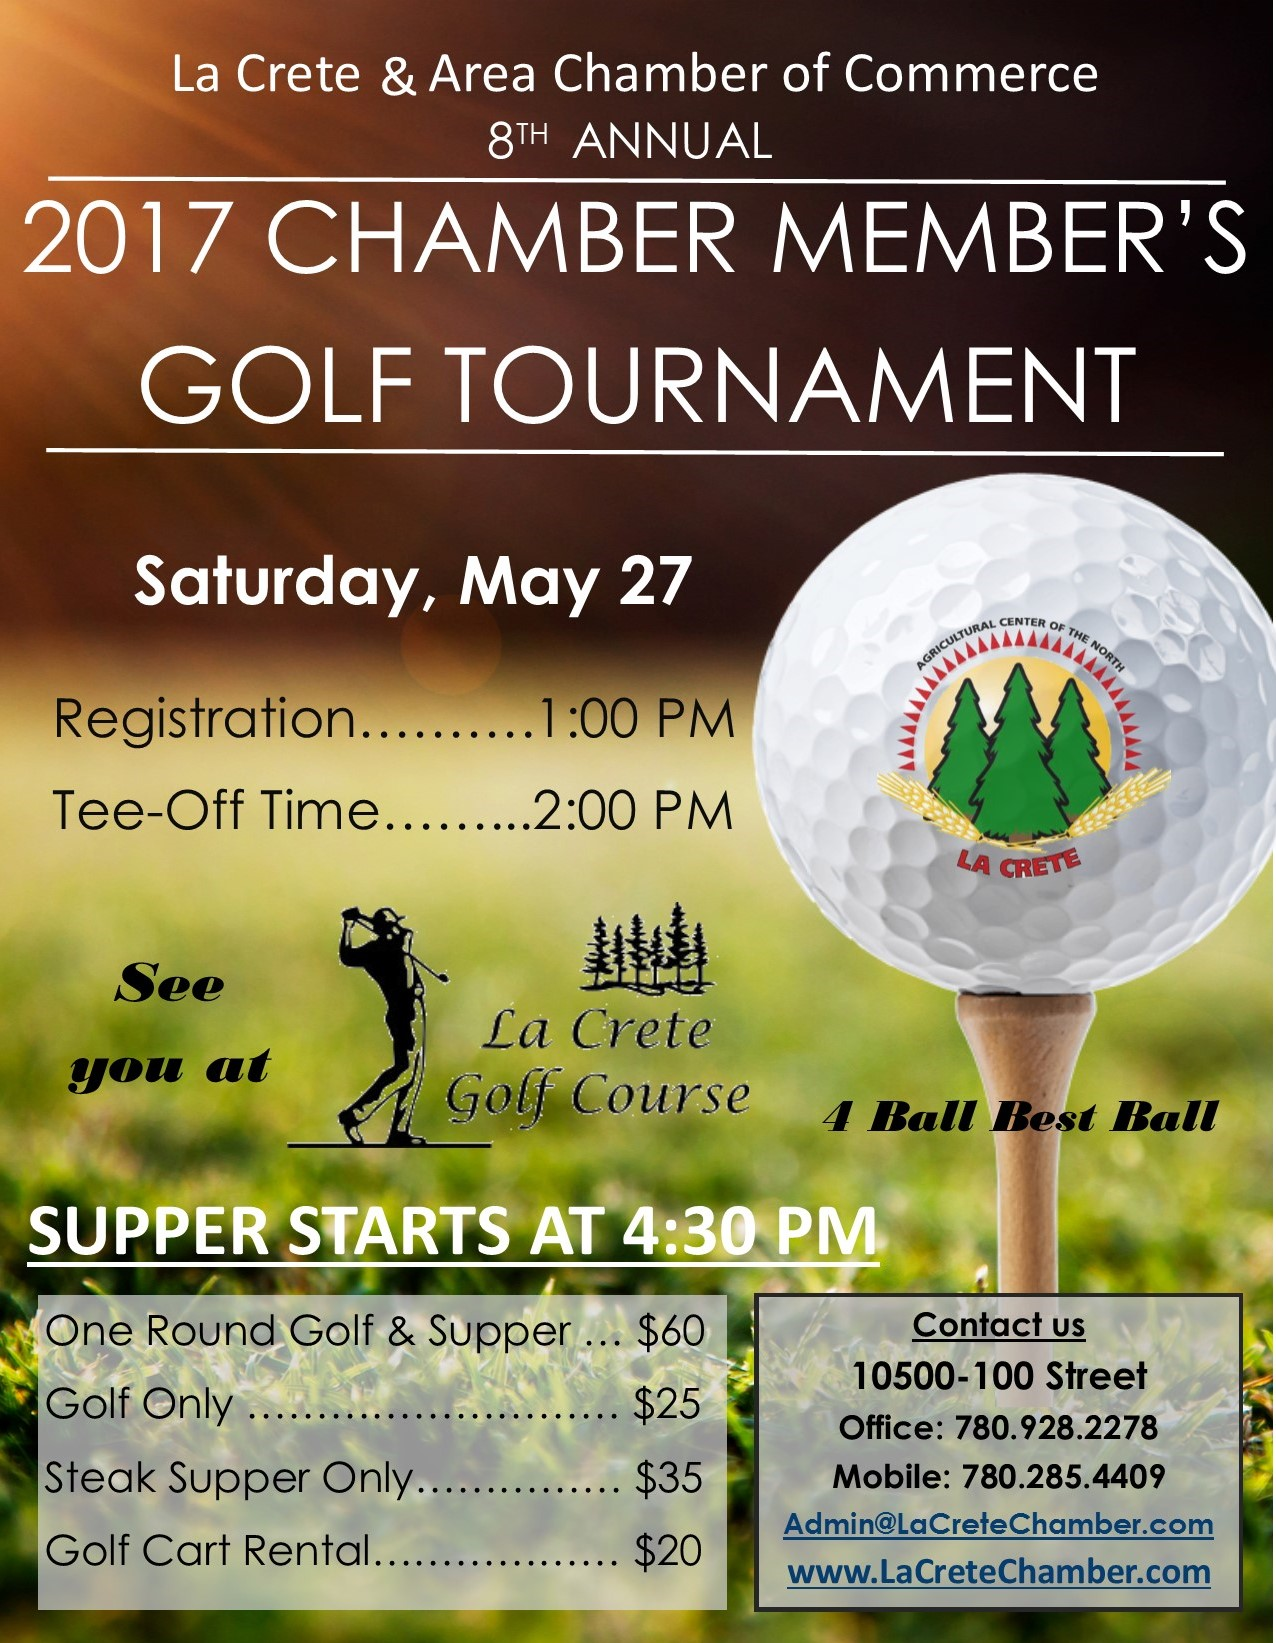 8th Annual Chamber Member's Golf Tournament